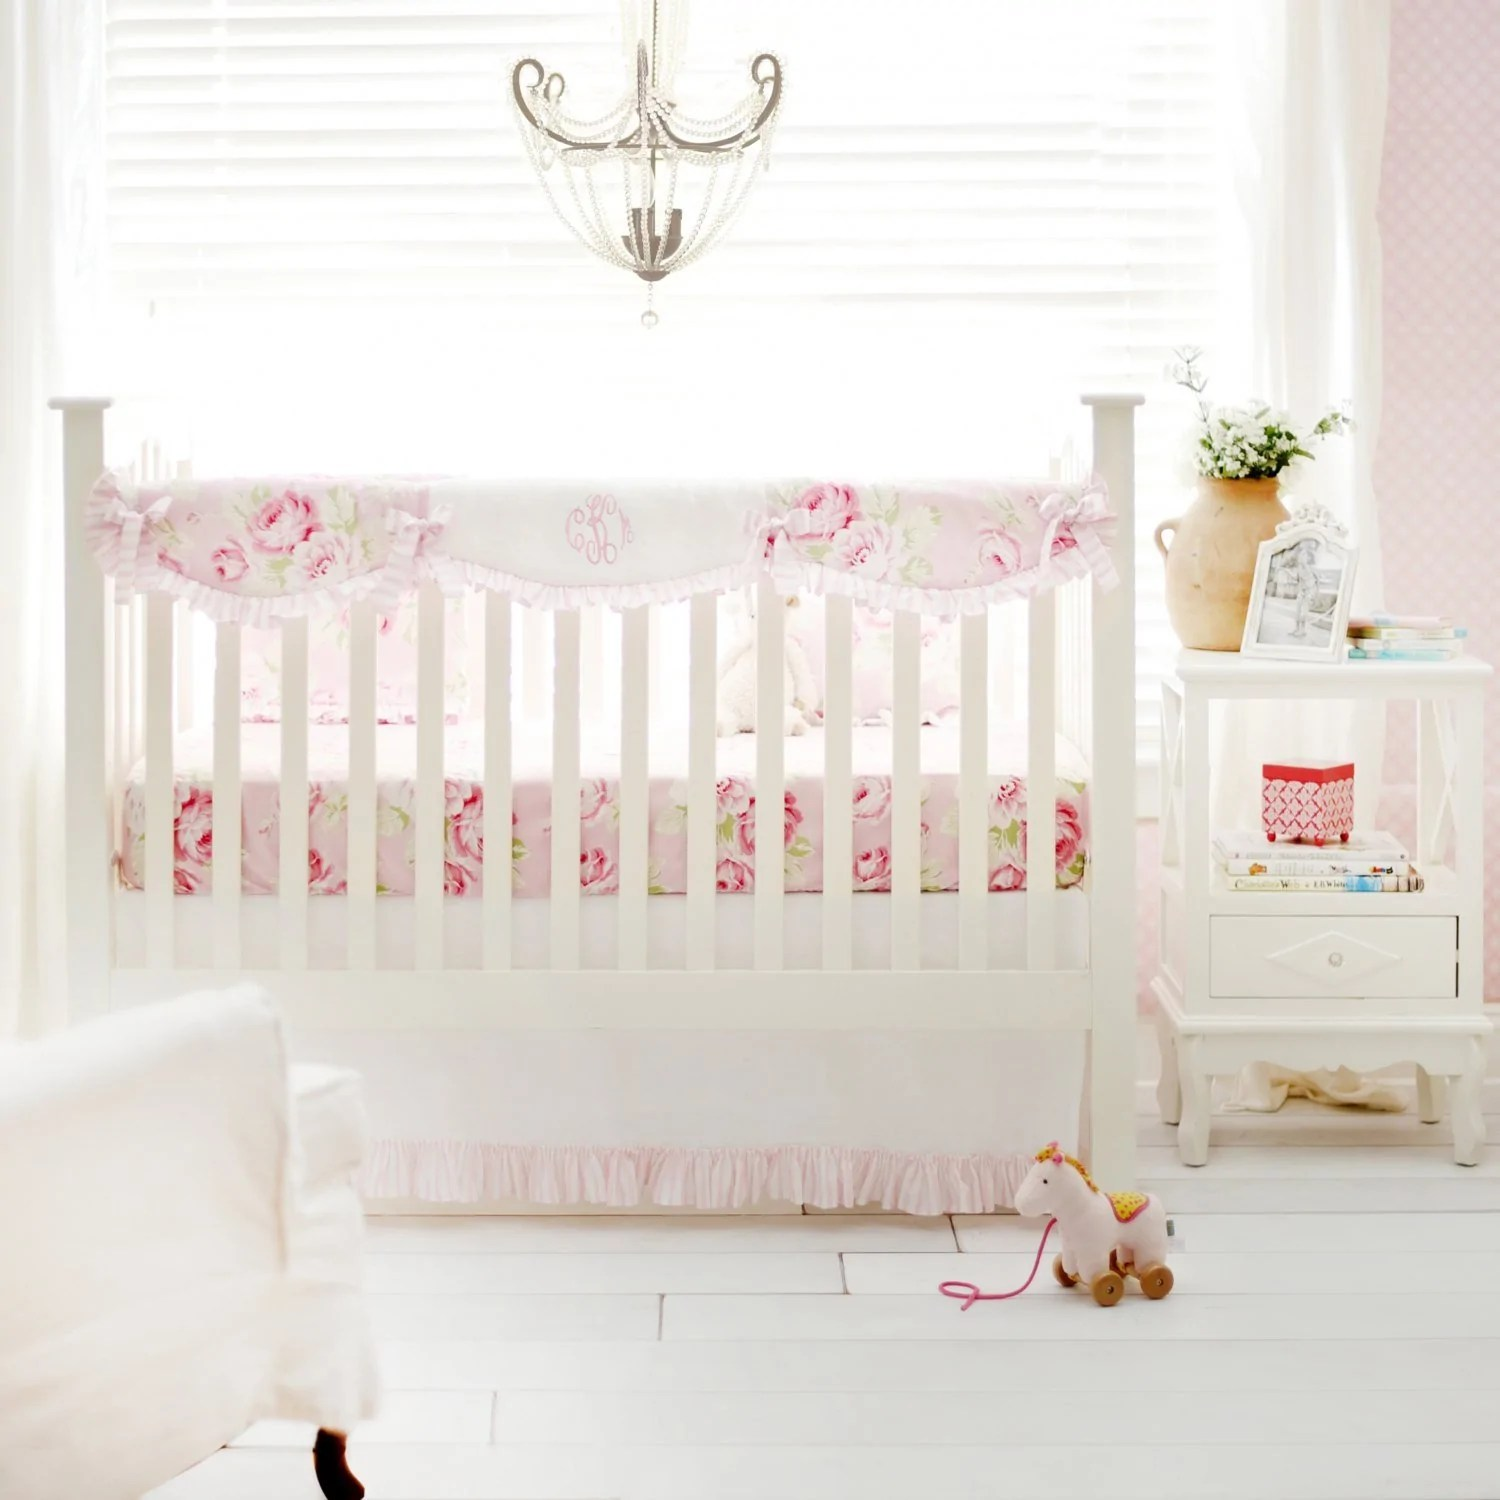 Full Crib Bedding Sets Pink Floral Desert Rose Crib Bedding Set Jack And Jill Boutique